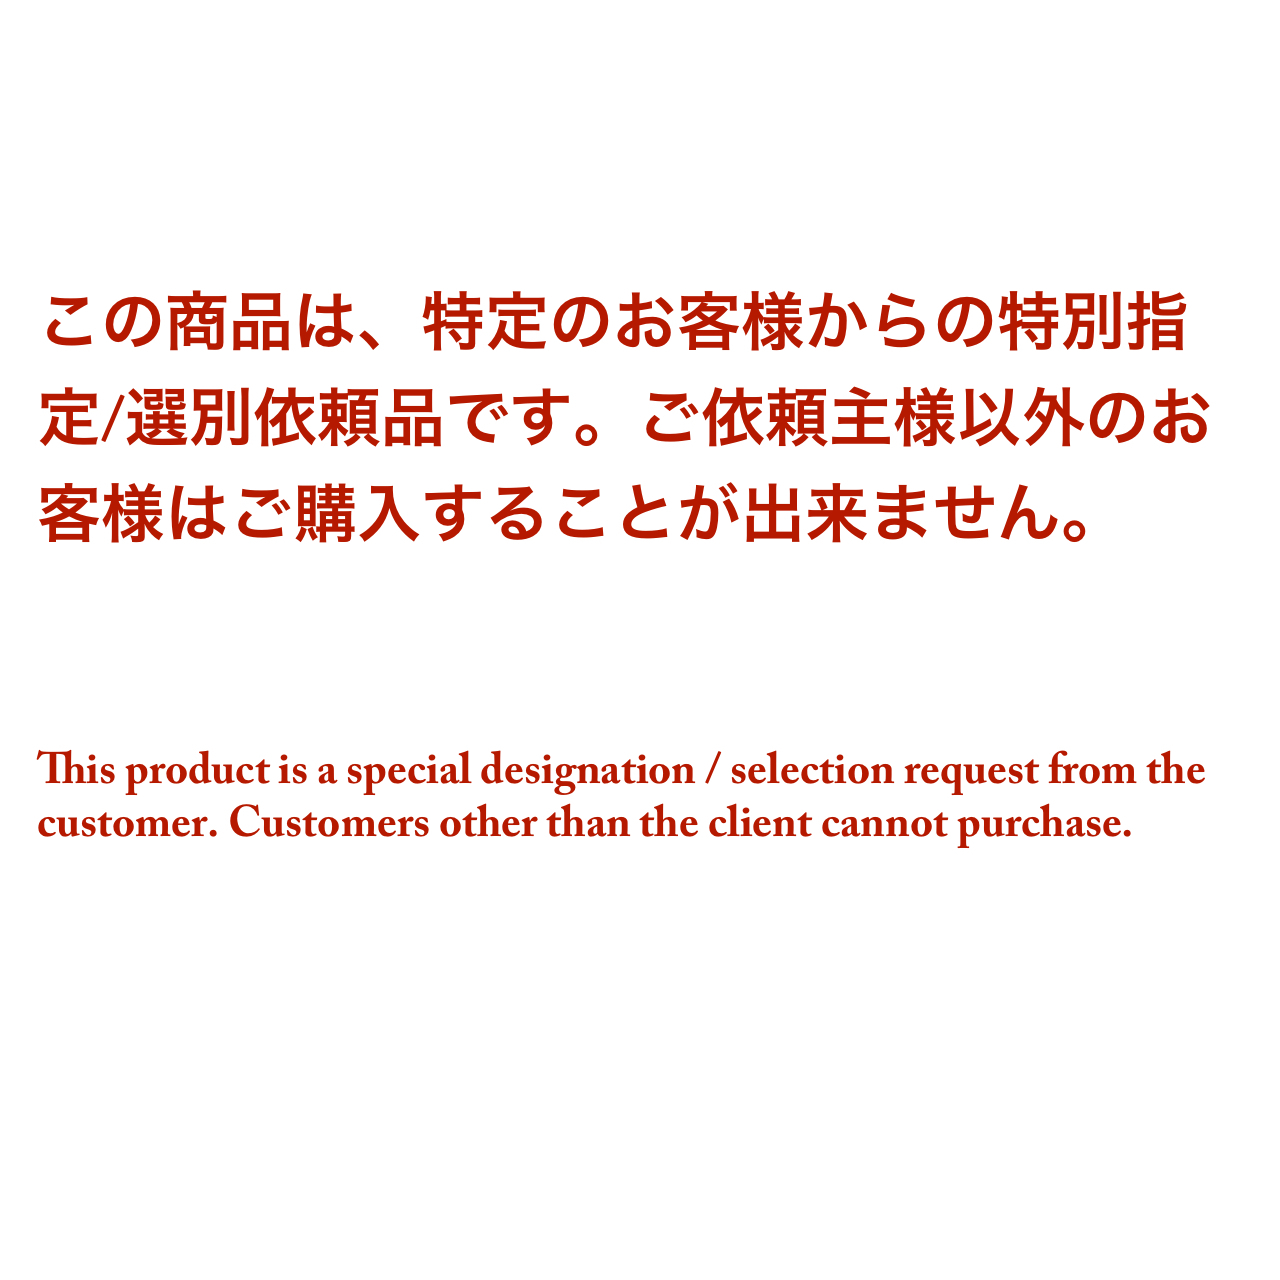 Specified Customer Products / 特定顧客商品